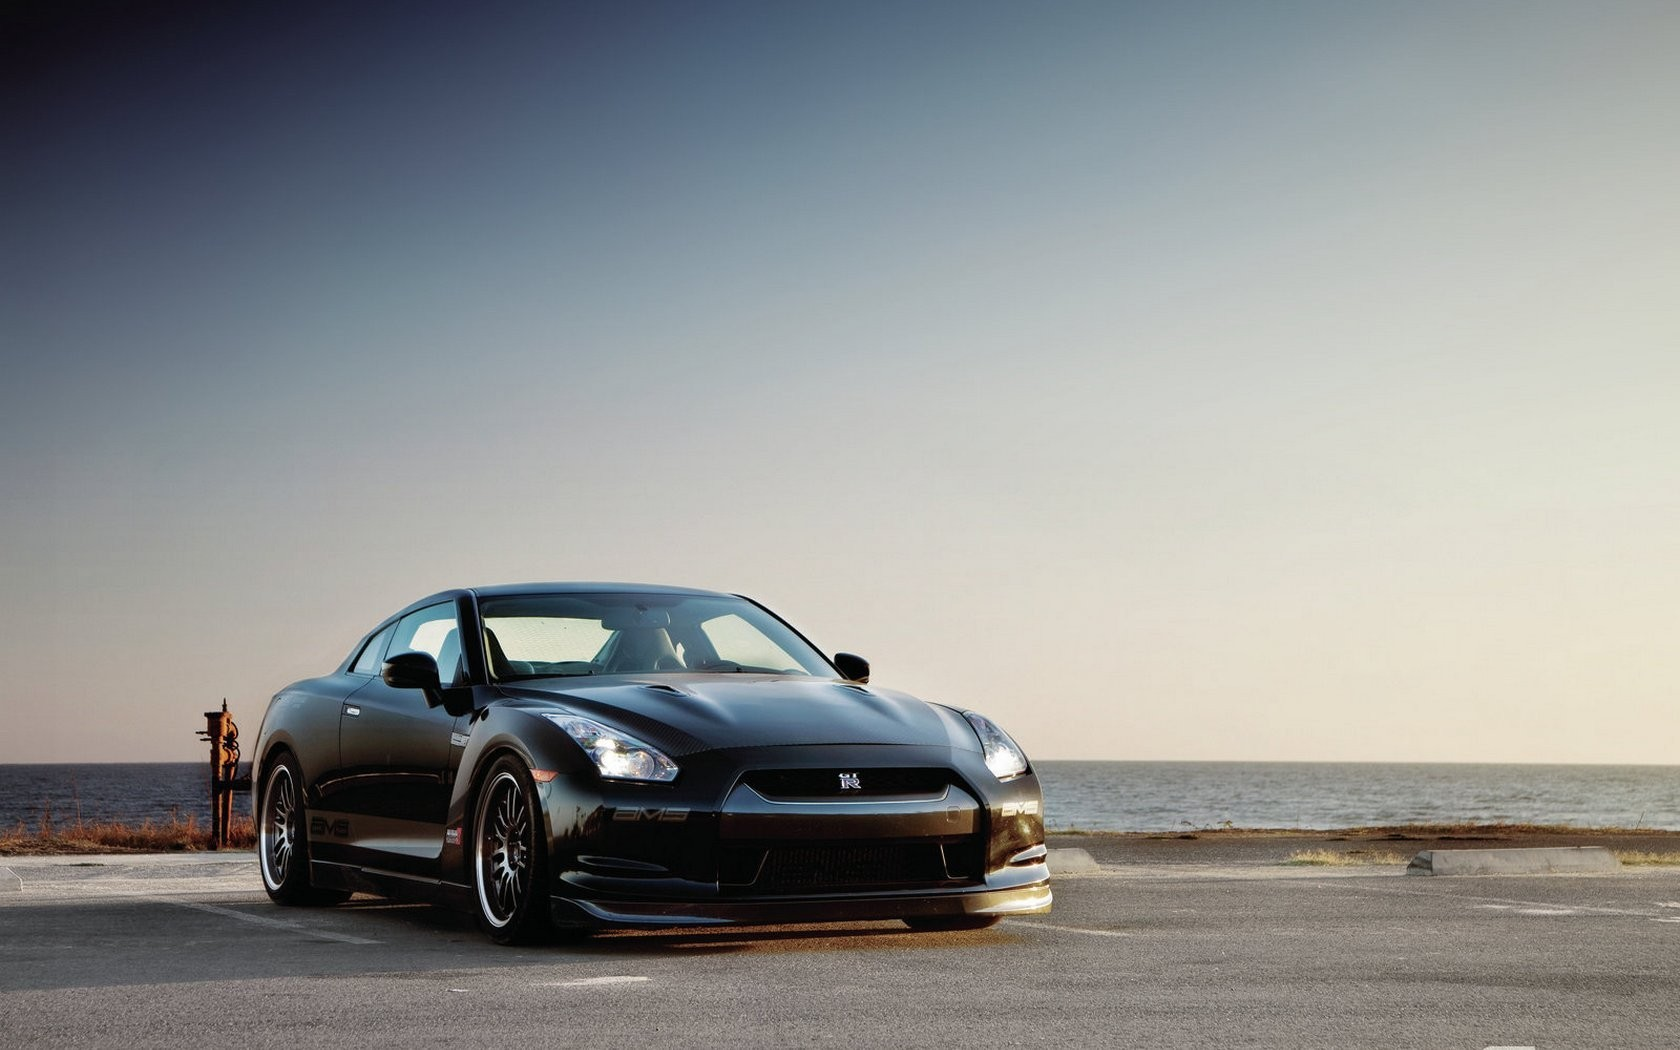 nissan gt-r Nissan GT-R HD Wallpaper